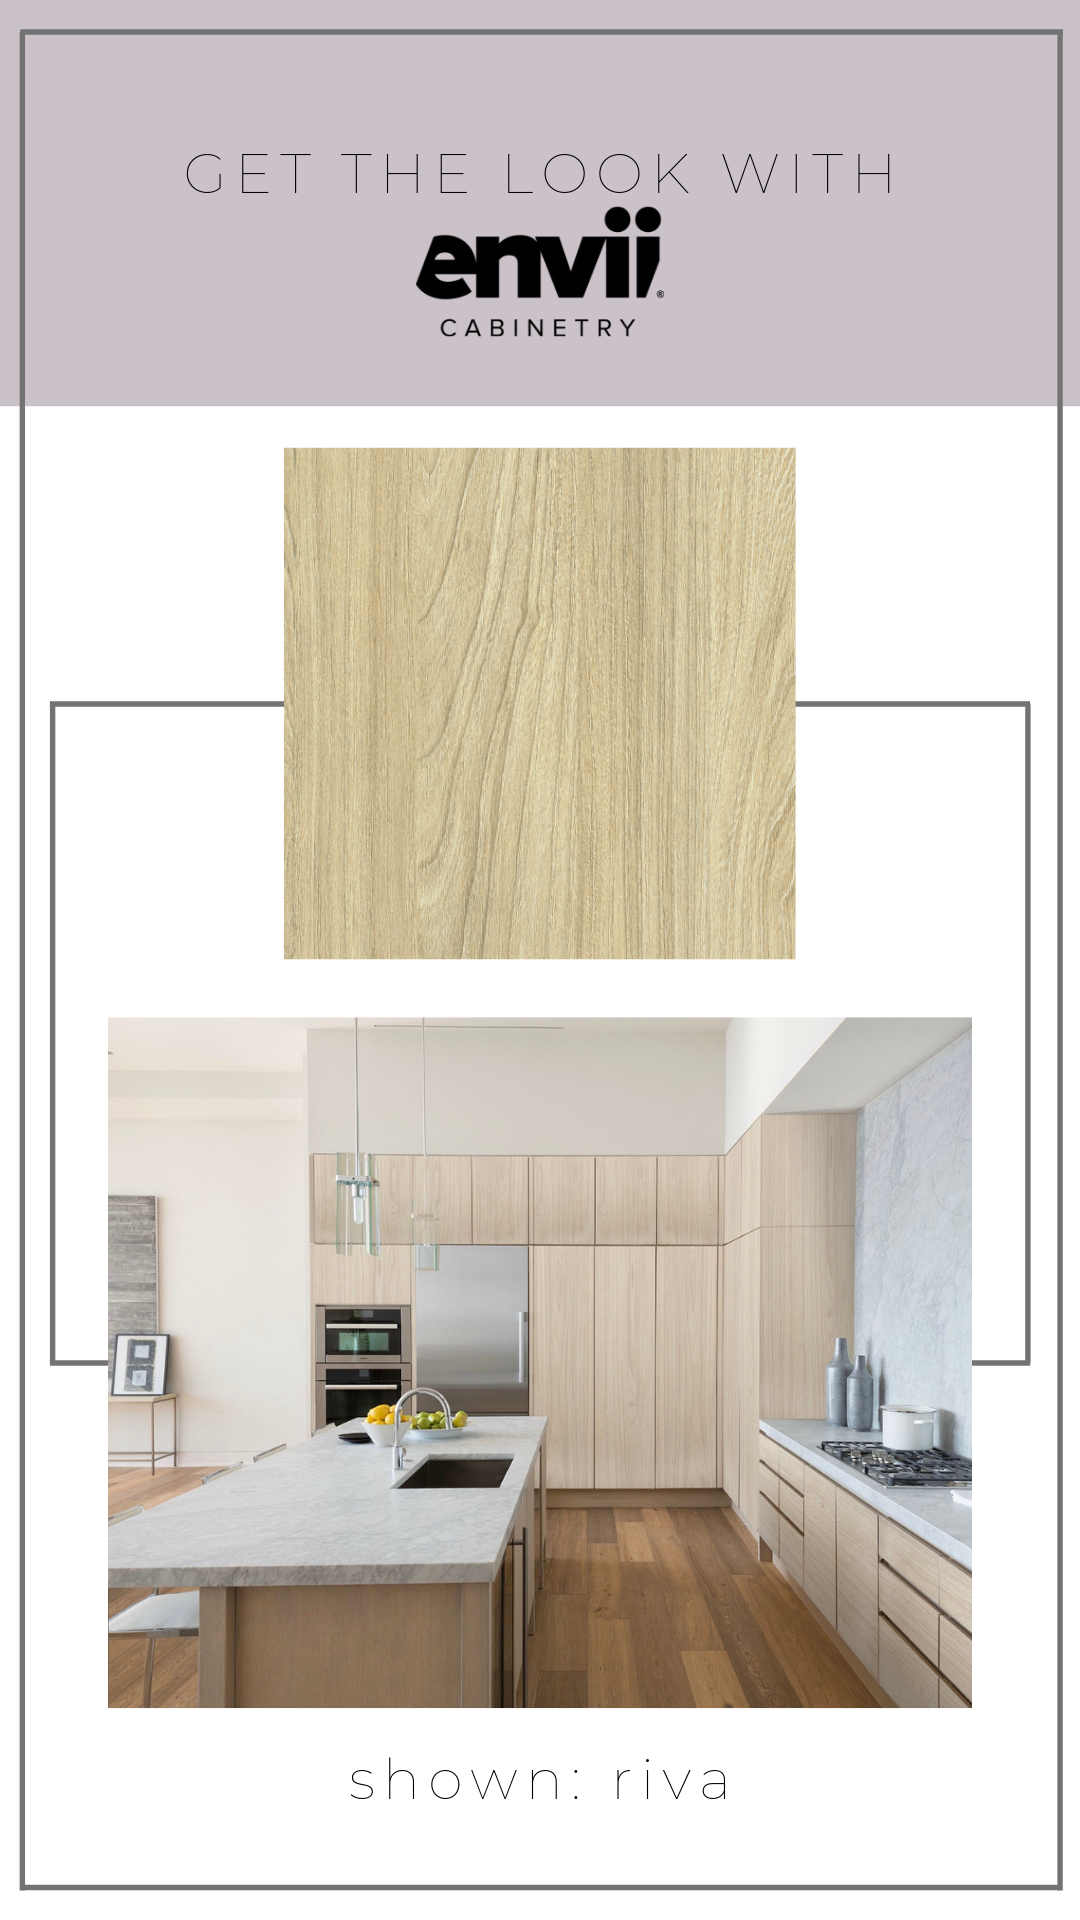 Still Going Strong With The Natural Wood Trend And We Hope It S Here To Stay Featuring Framel Frameless Cabinets Cabinet Manufacturers Contemporary Kitchen